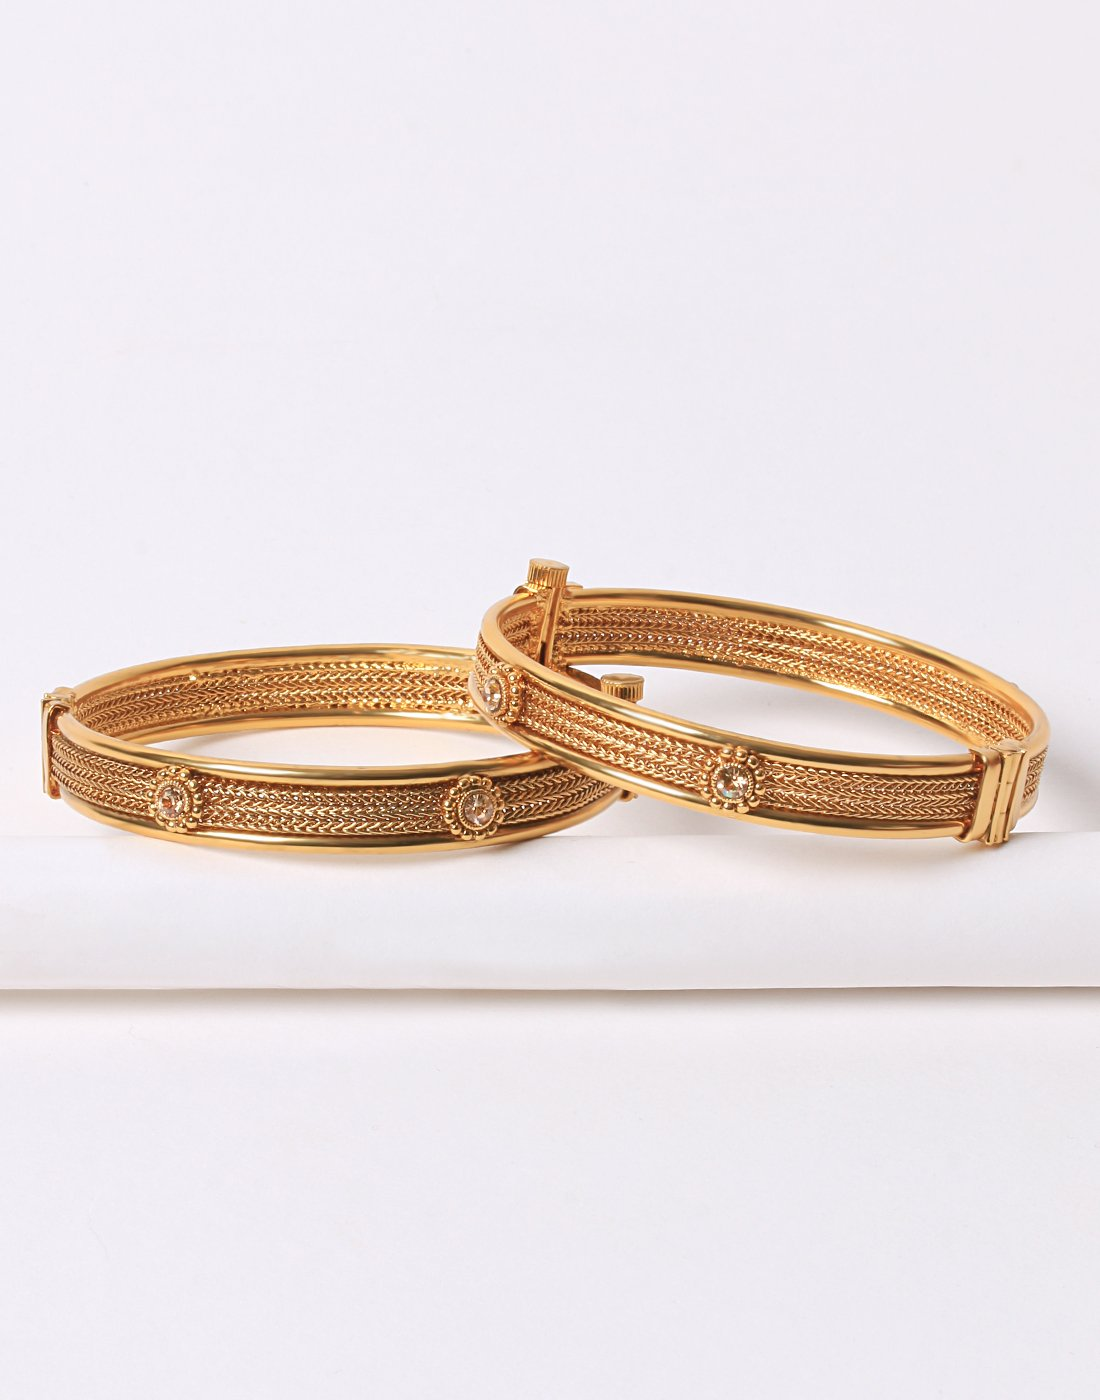 MBZ Meena Bazaar-Meena Bazaar Bangle Set